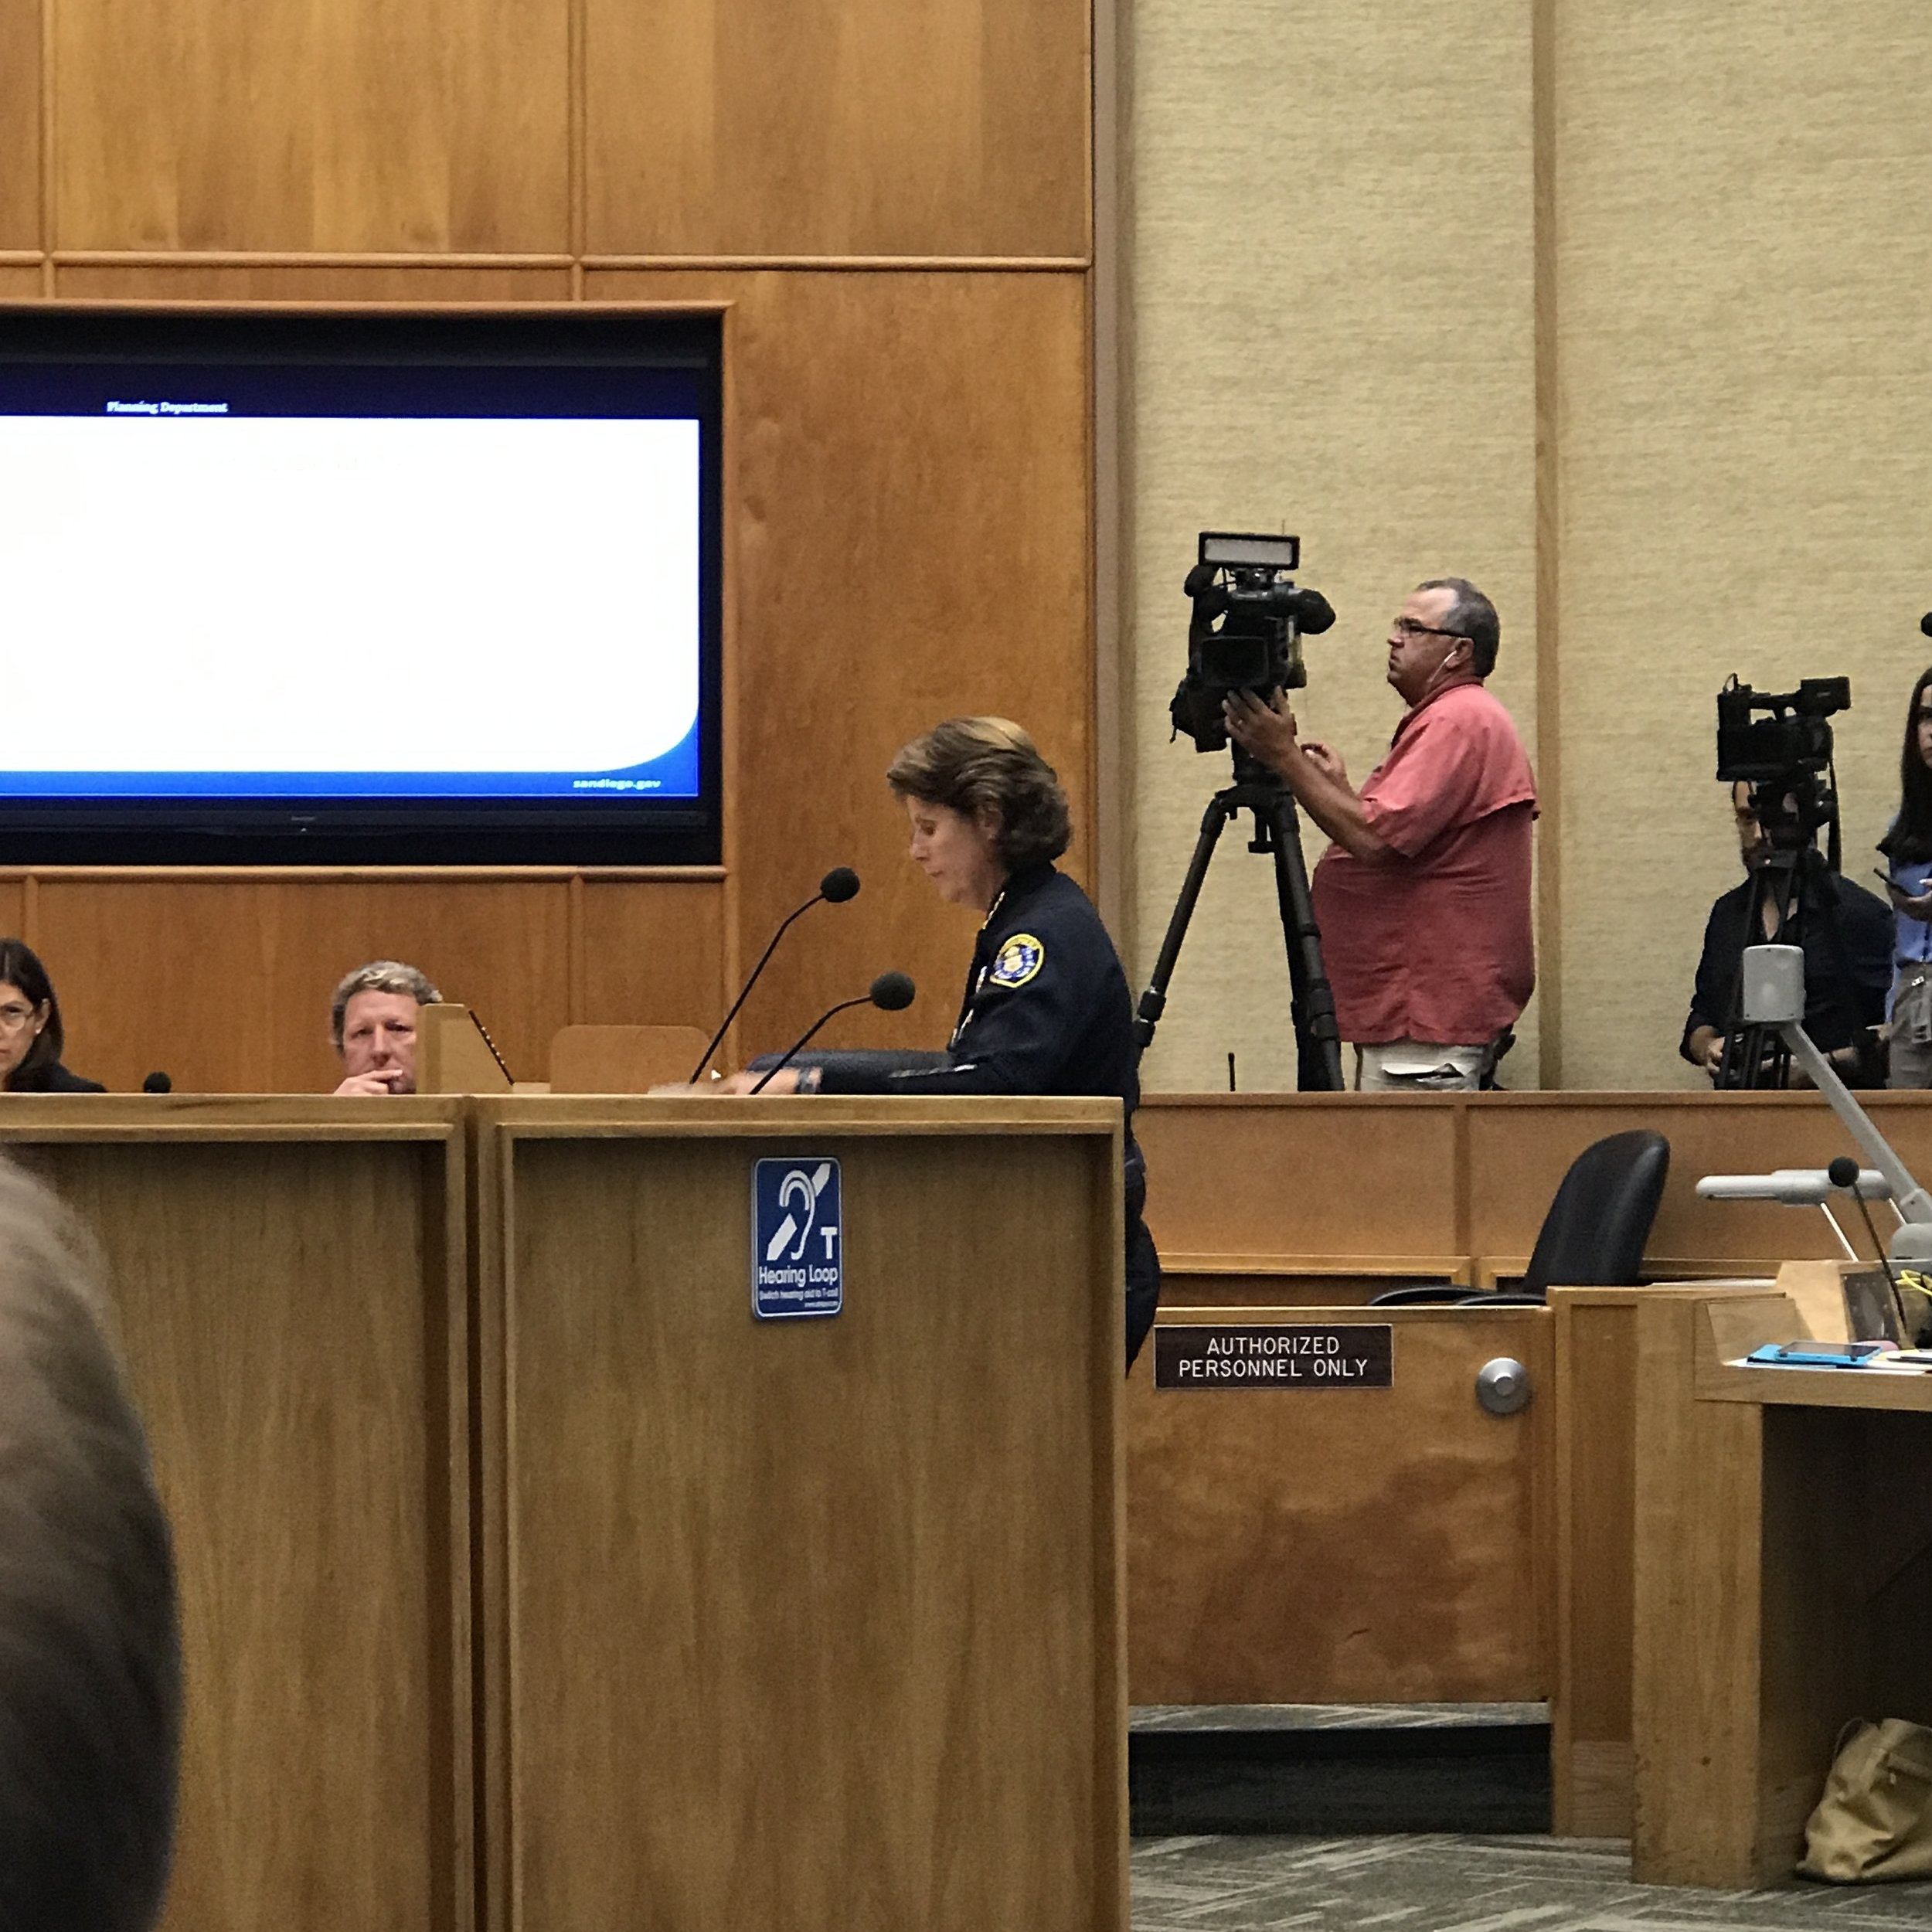 Police Chief Shelley Zimmerman giving an impassioned speech. As San Diego chief of police, she knows that the mess legalization has created will fall on her and other public safety officials to try and manage.